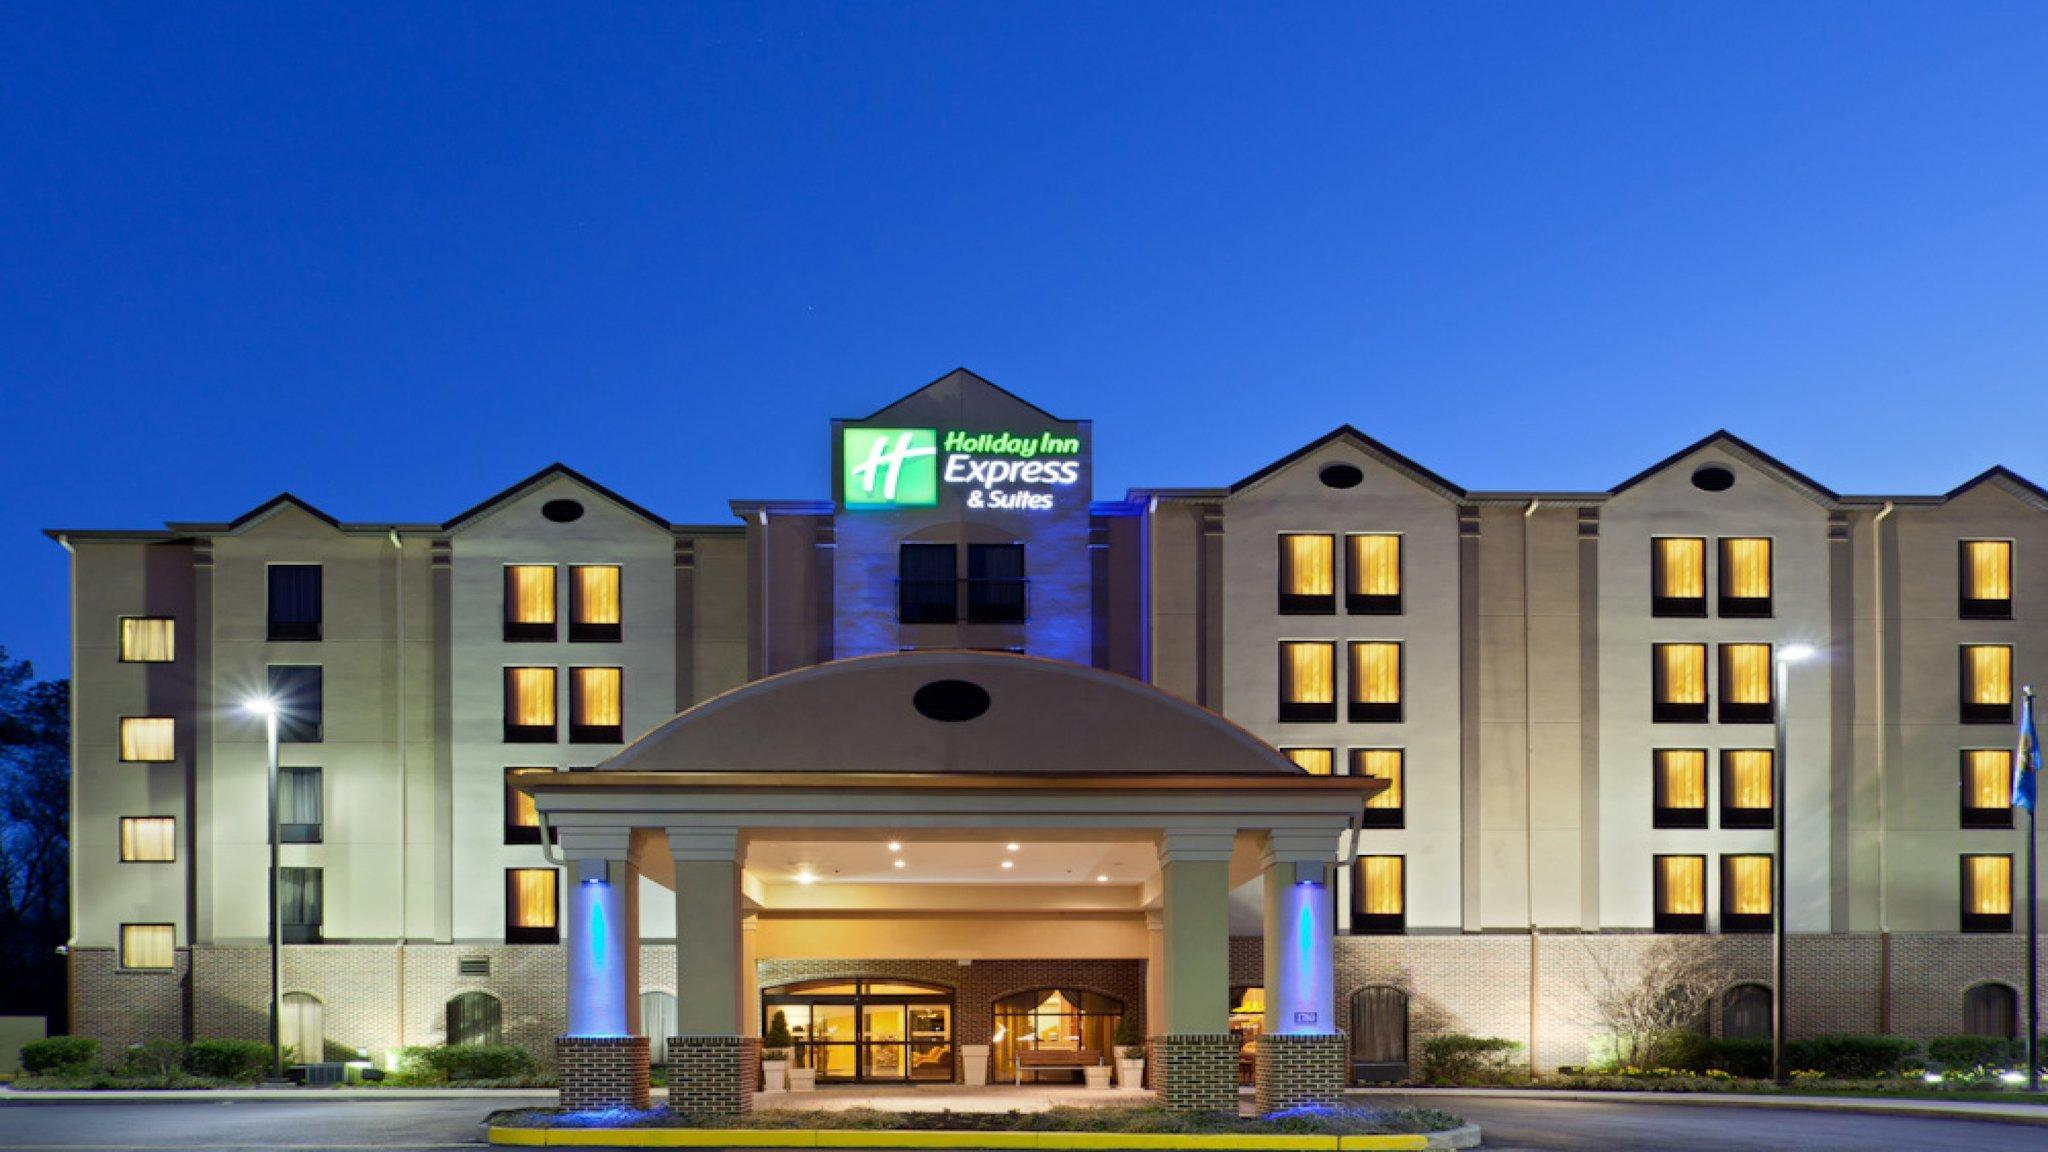 Holiday Inn Express Hotel And Suites Dover